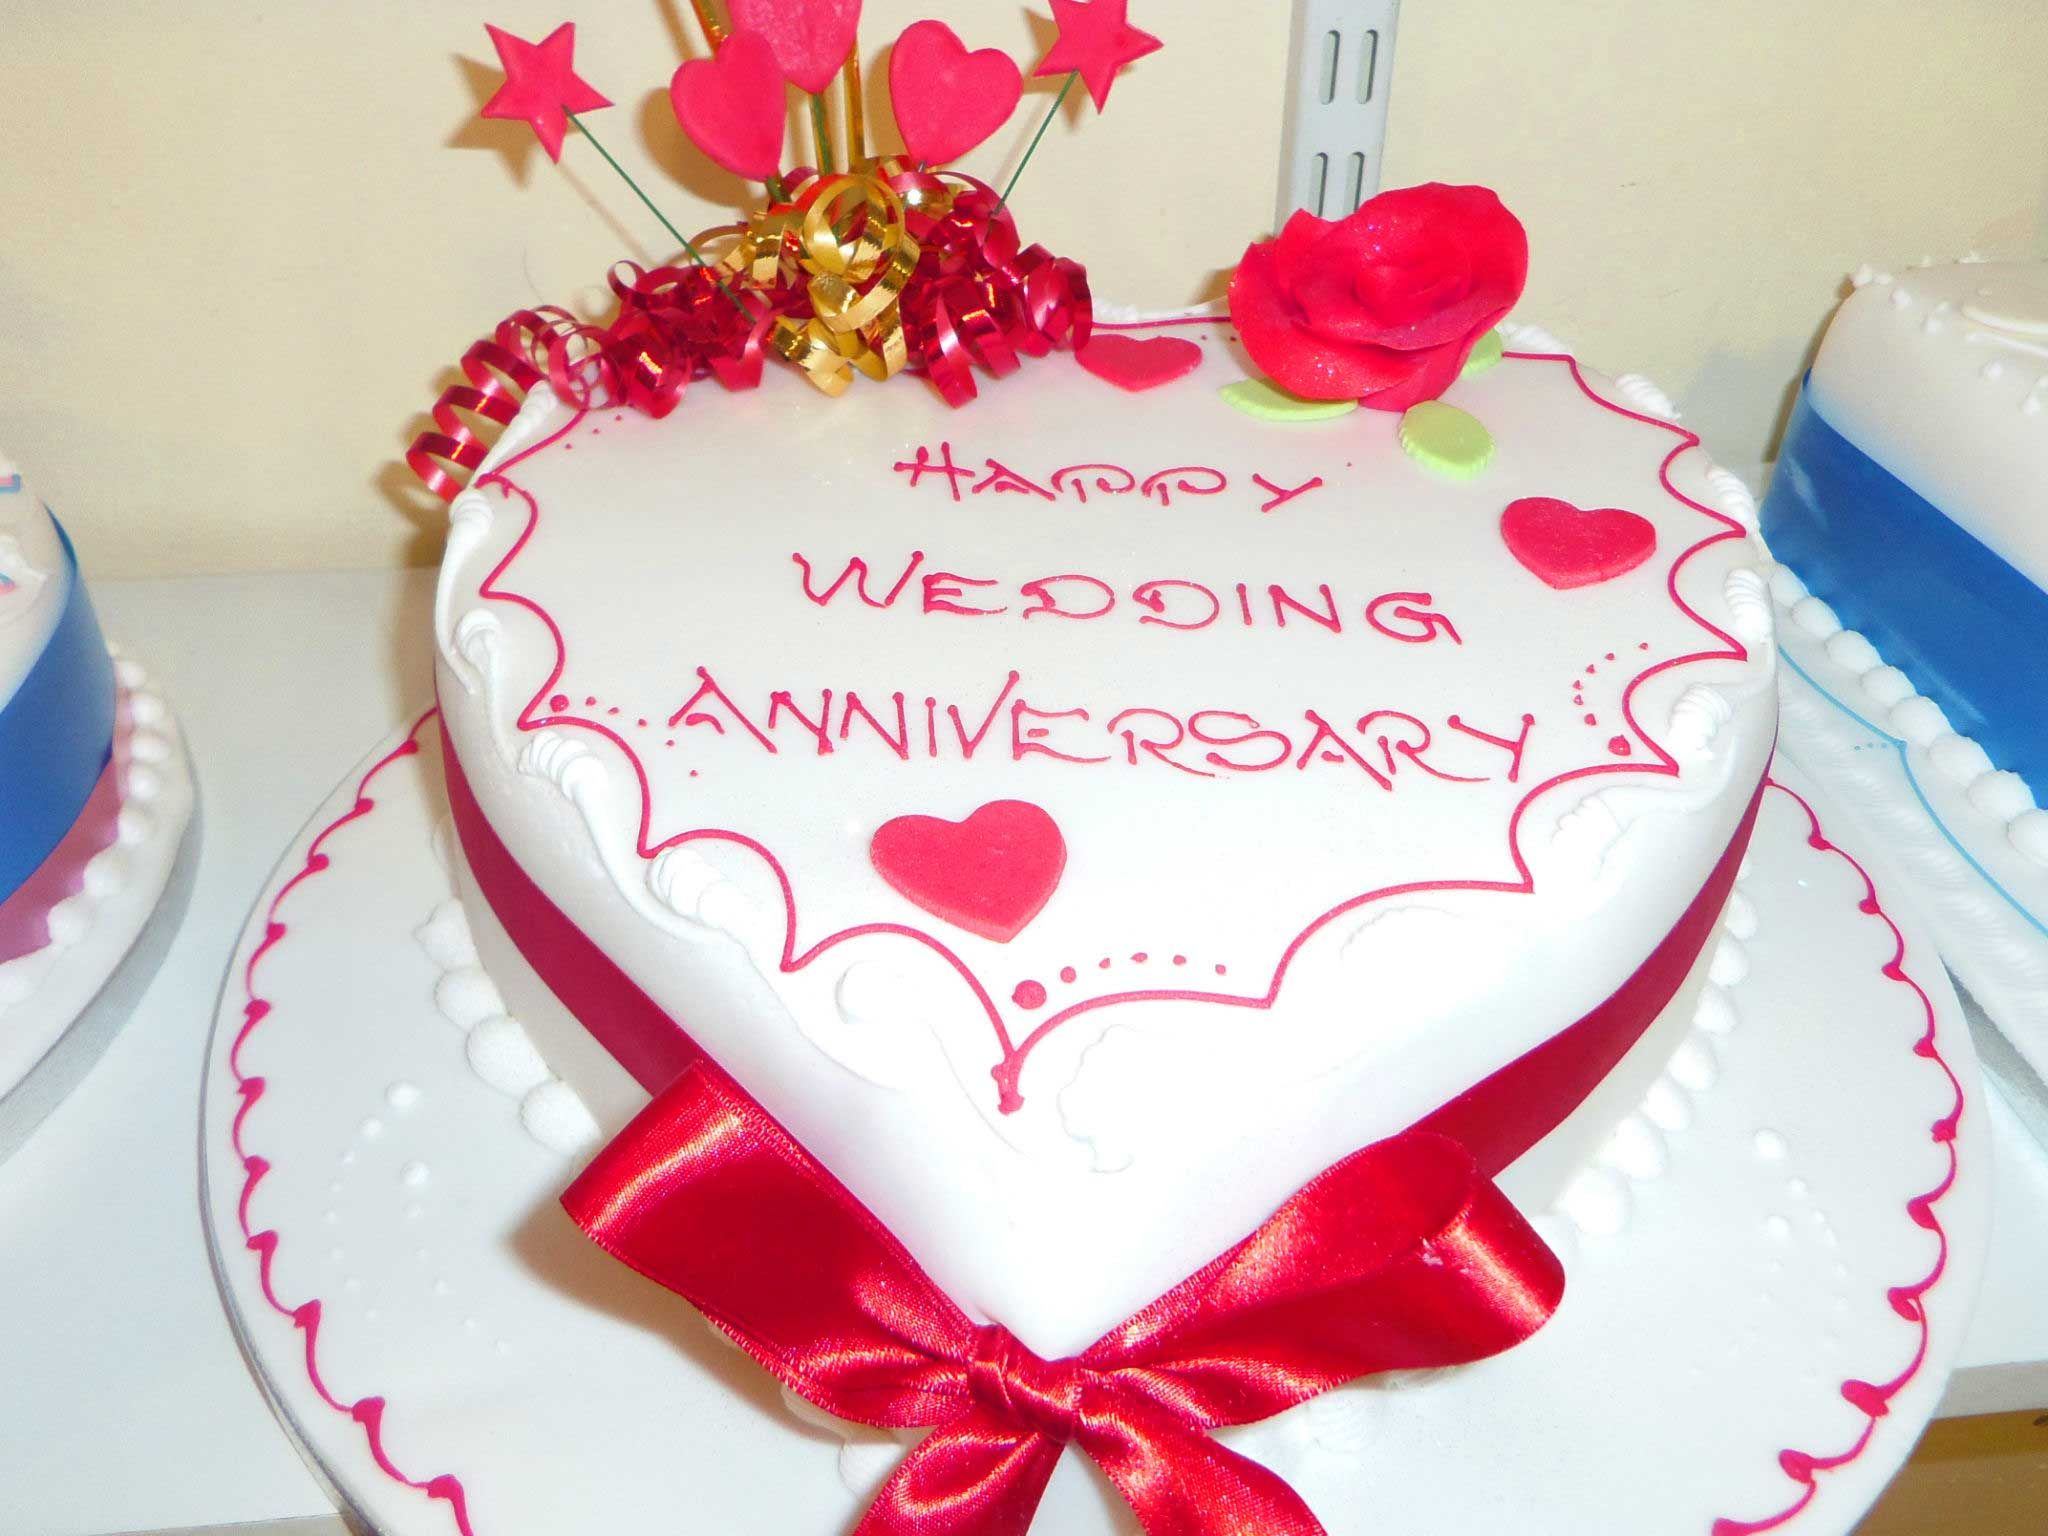 Wedding Anniversary Cake Images Free Wedding Photography